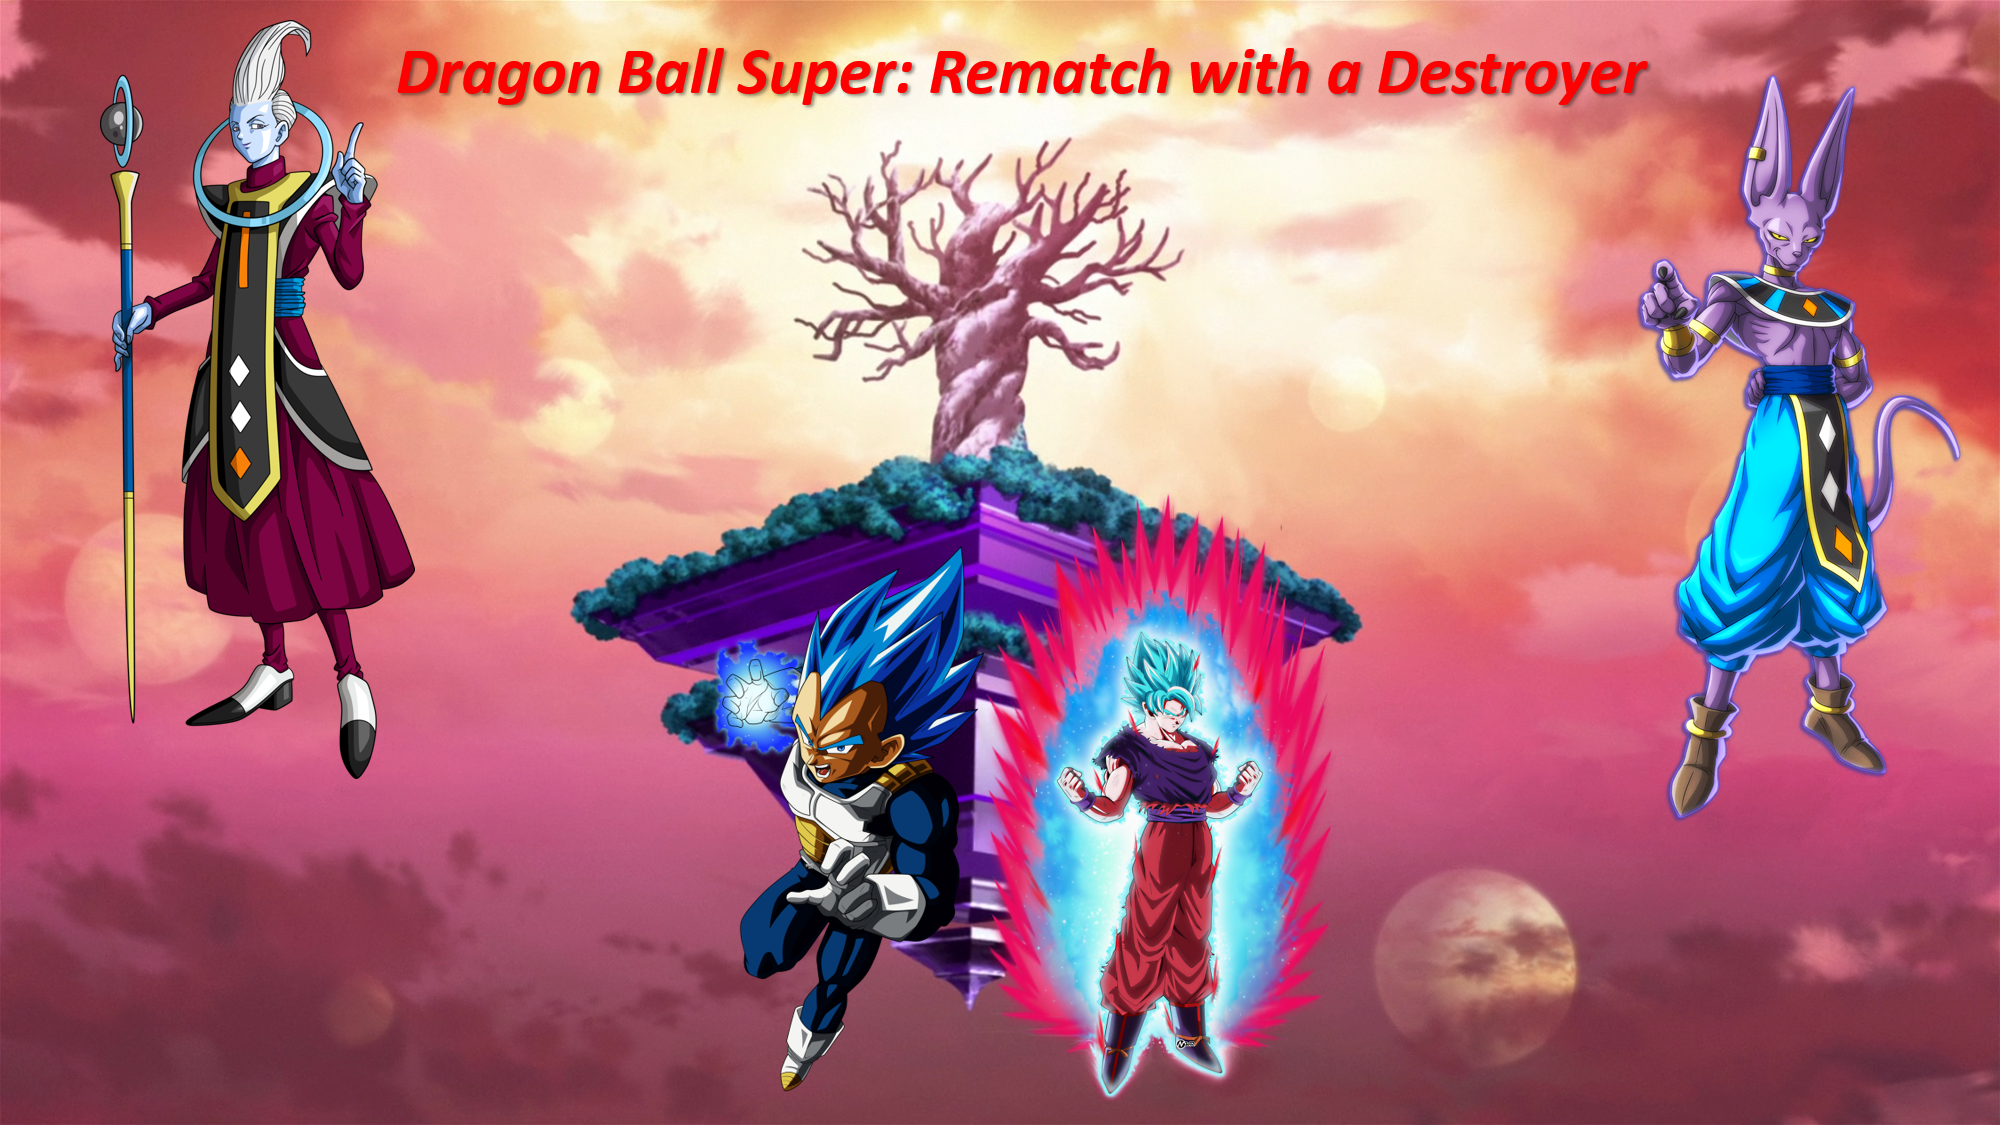 Dragon Ball Super: Rematch With a Destroyer